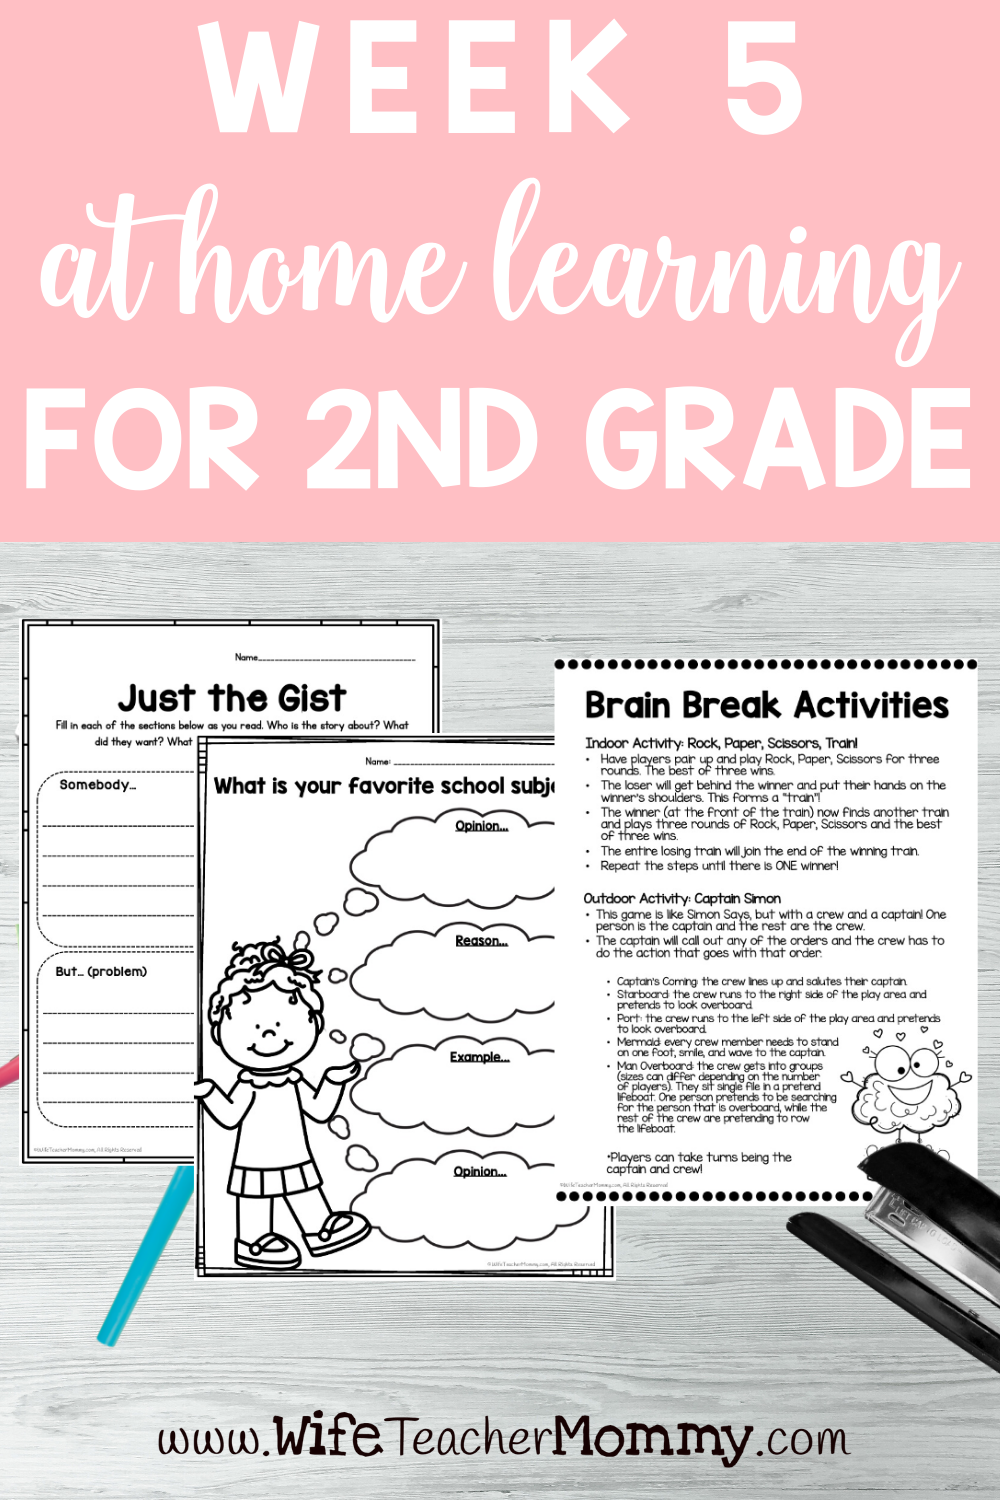 2nd Grade Distance Learning Packet At Home Learning Activities Week 5 Wife Teacher Mommy Elementary Lesson Plans Distance Learning Homeschool Lesson [ 1500 x 1000 Pixel ]